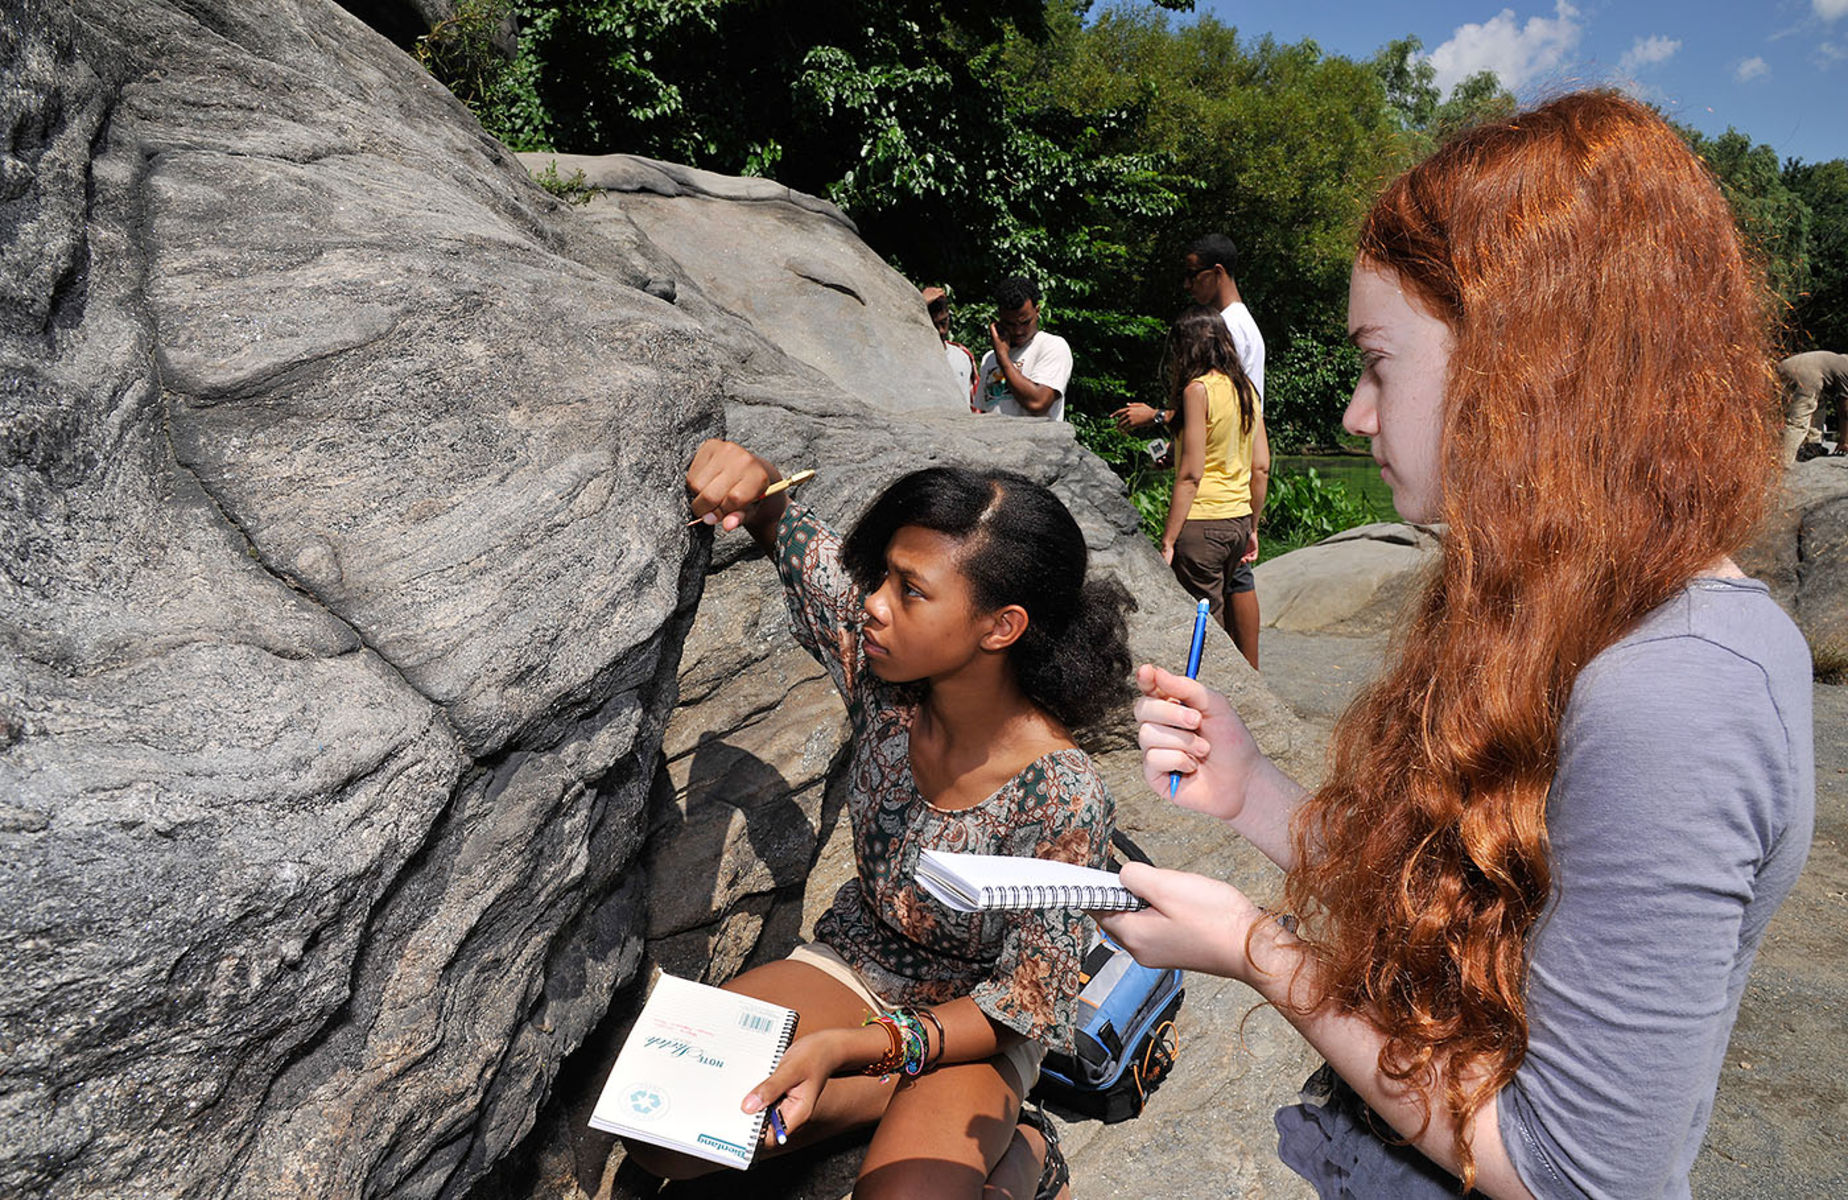 Two students in the field in Central Park peer closely at a large boulder and make notes in notepads.